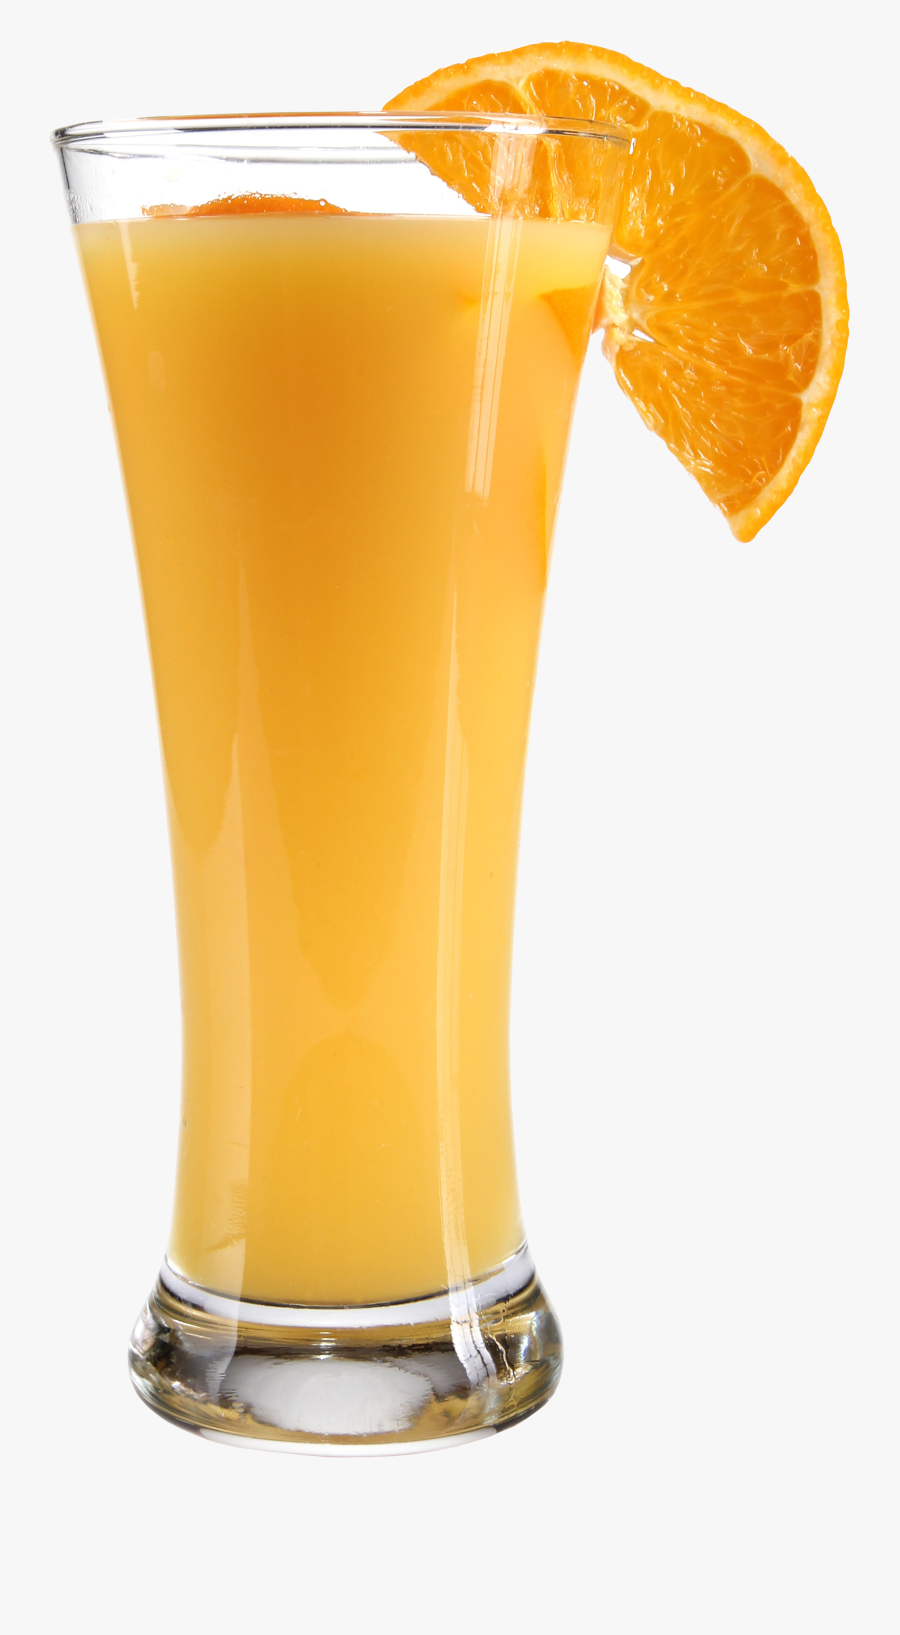 Juice Png Images Free Download - Orange Juice In A Glass, Transparent Clipart